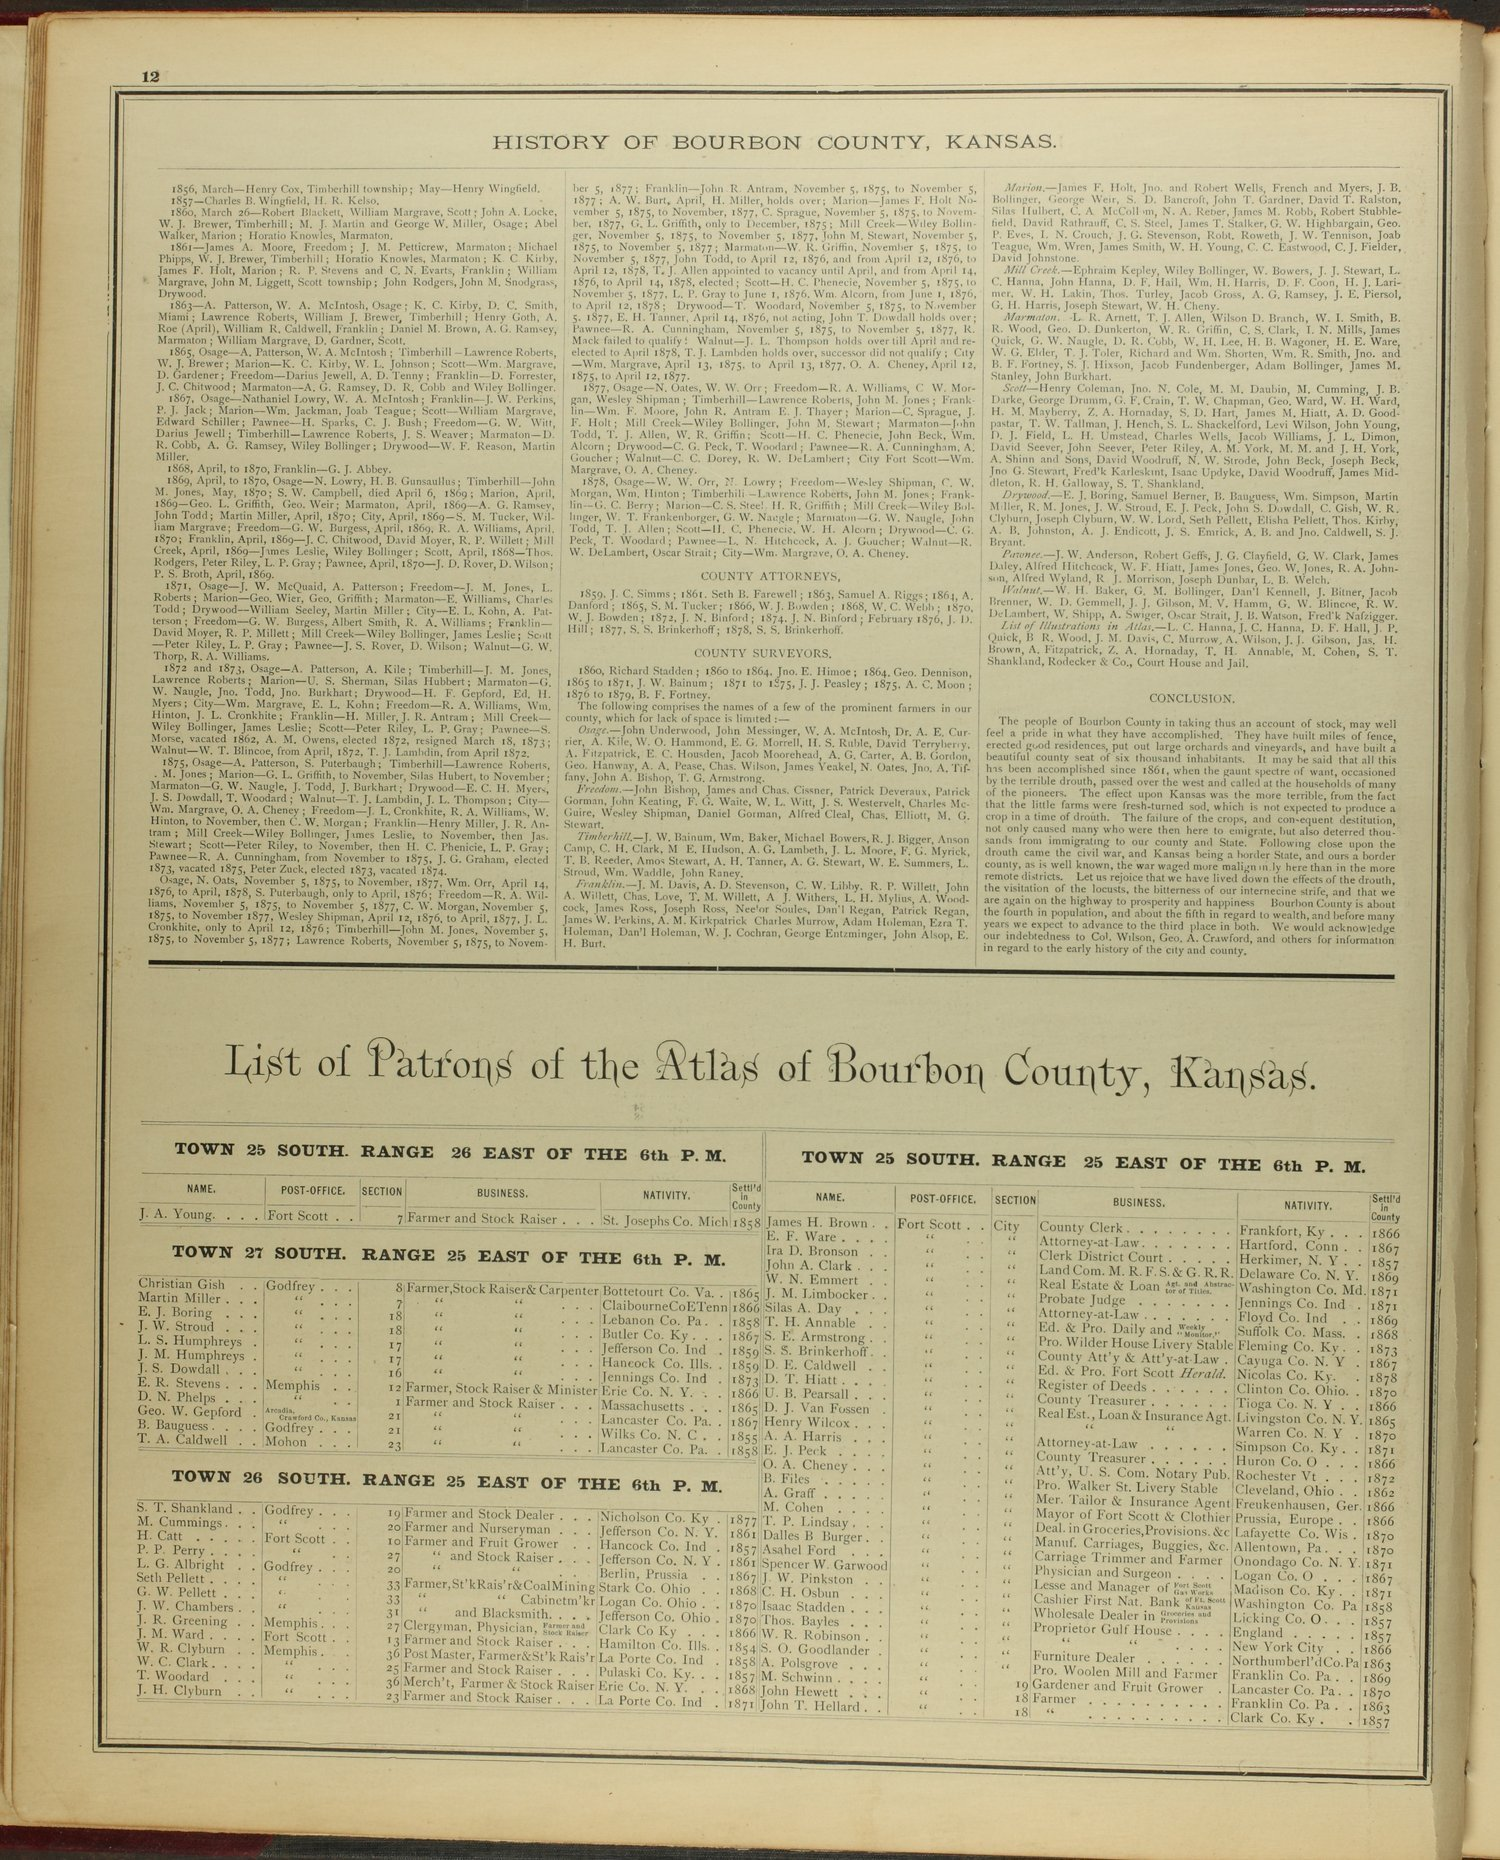 An illustrated historical atlas of Bourbon County, Kansas - 12